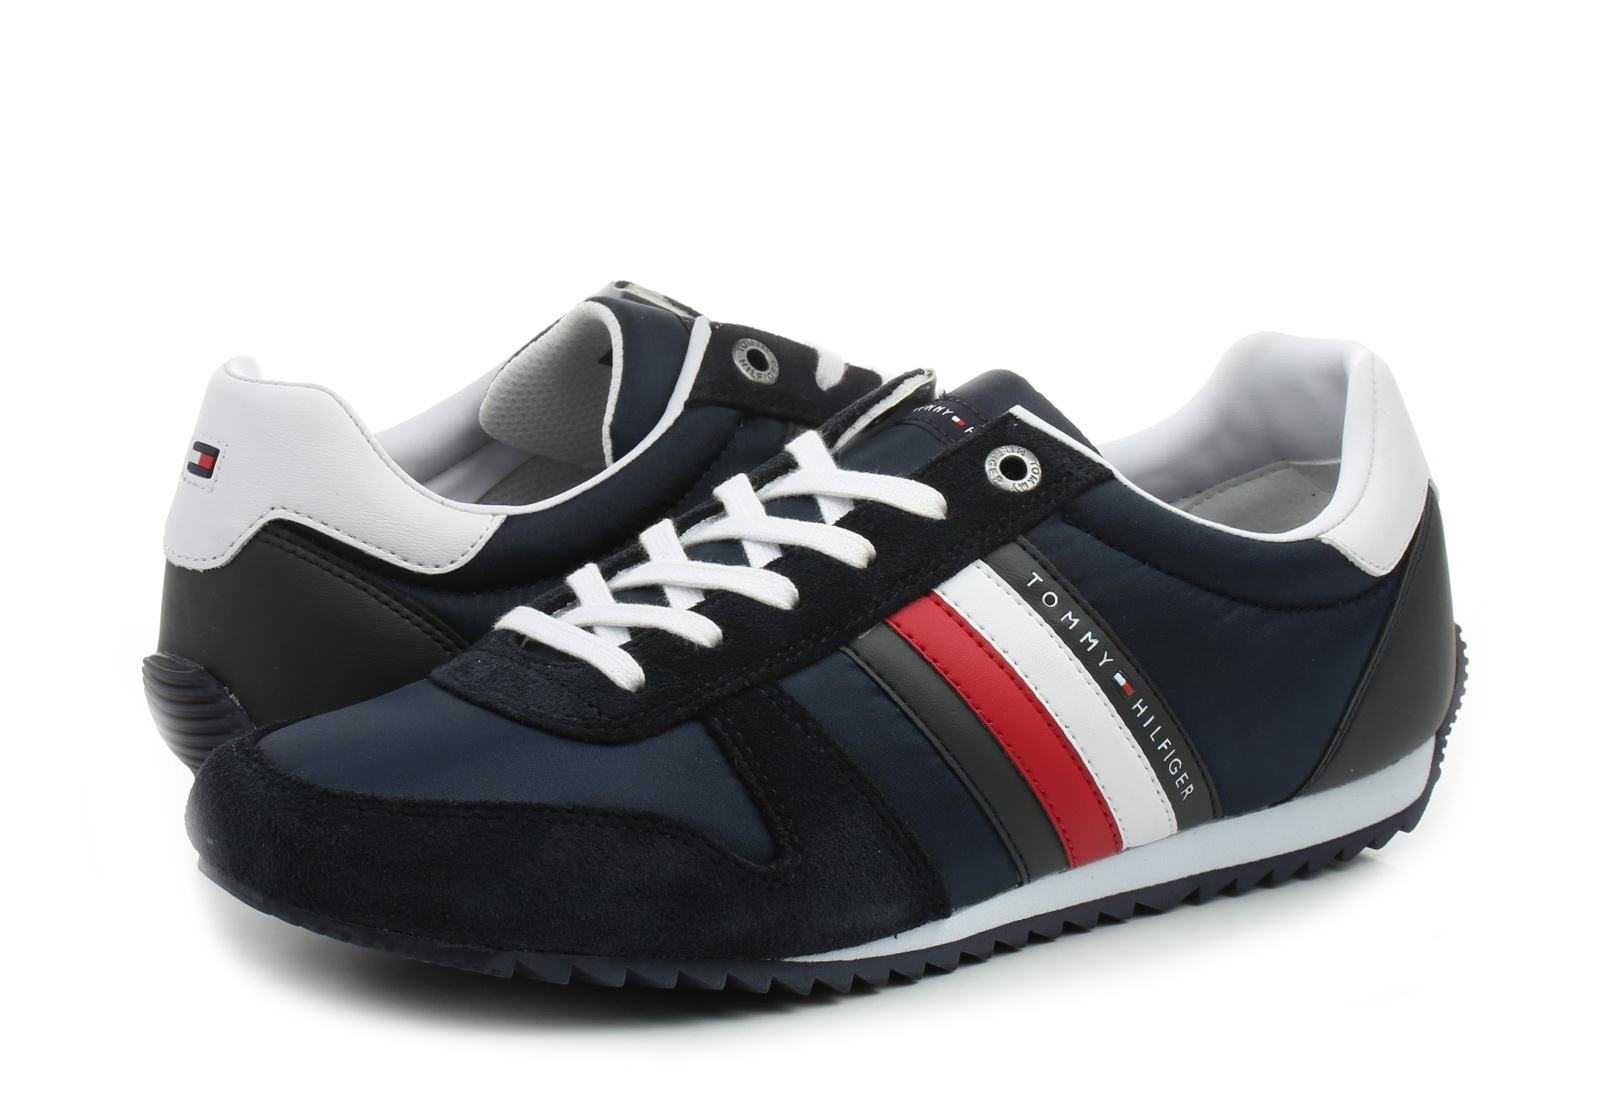 4a695118 Tommy Hilfiger Shoes - Branson 15c - 19S-2024-403 - Online shop for ...